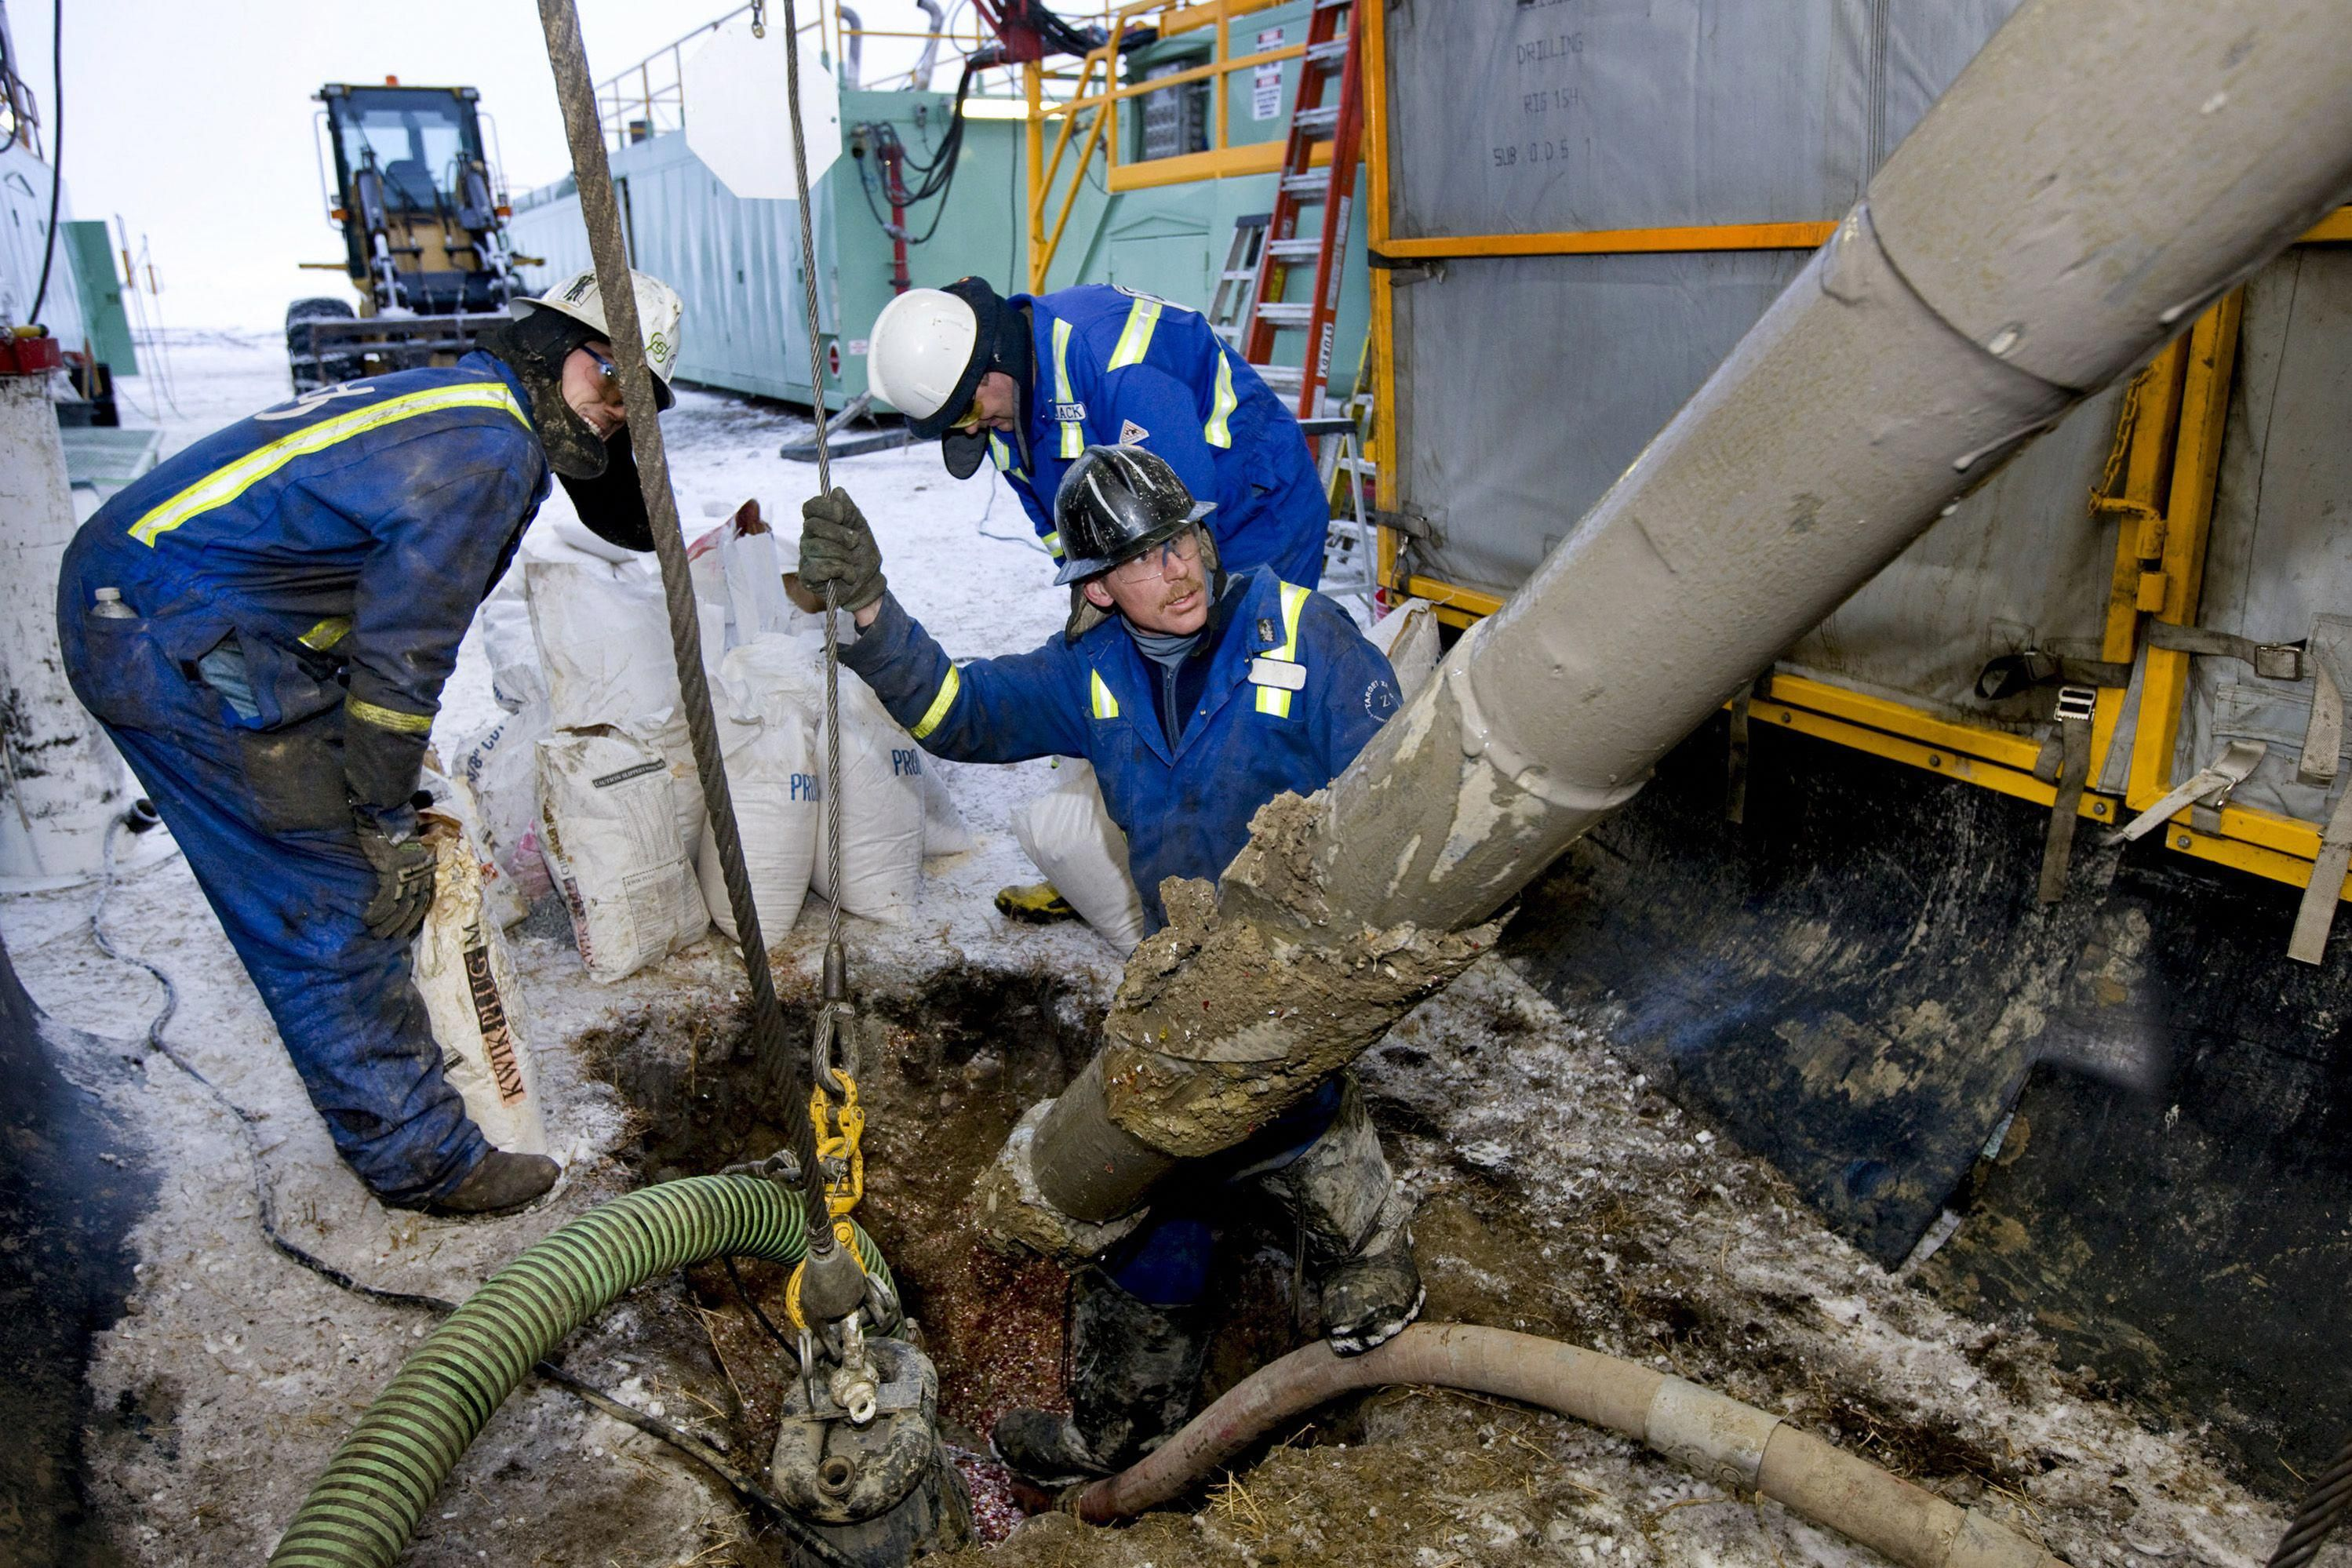 Oil and gas drill operators, for example, can earn C44.80